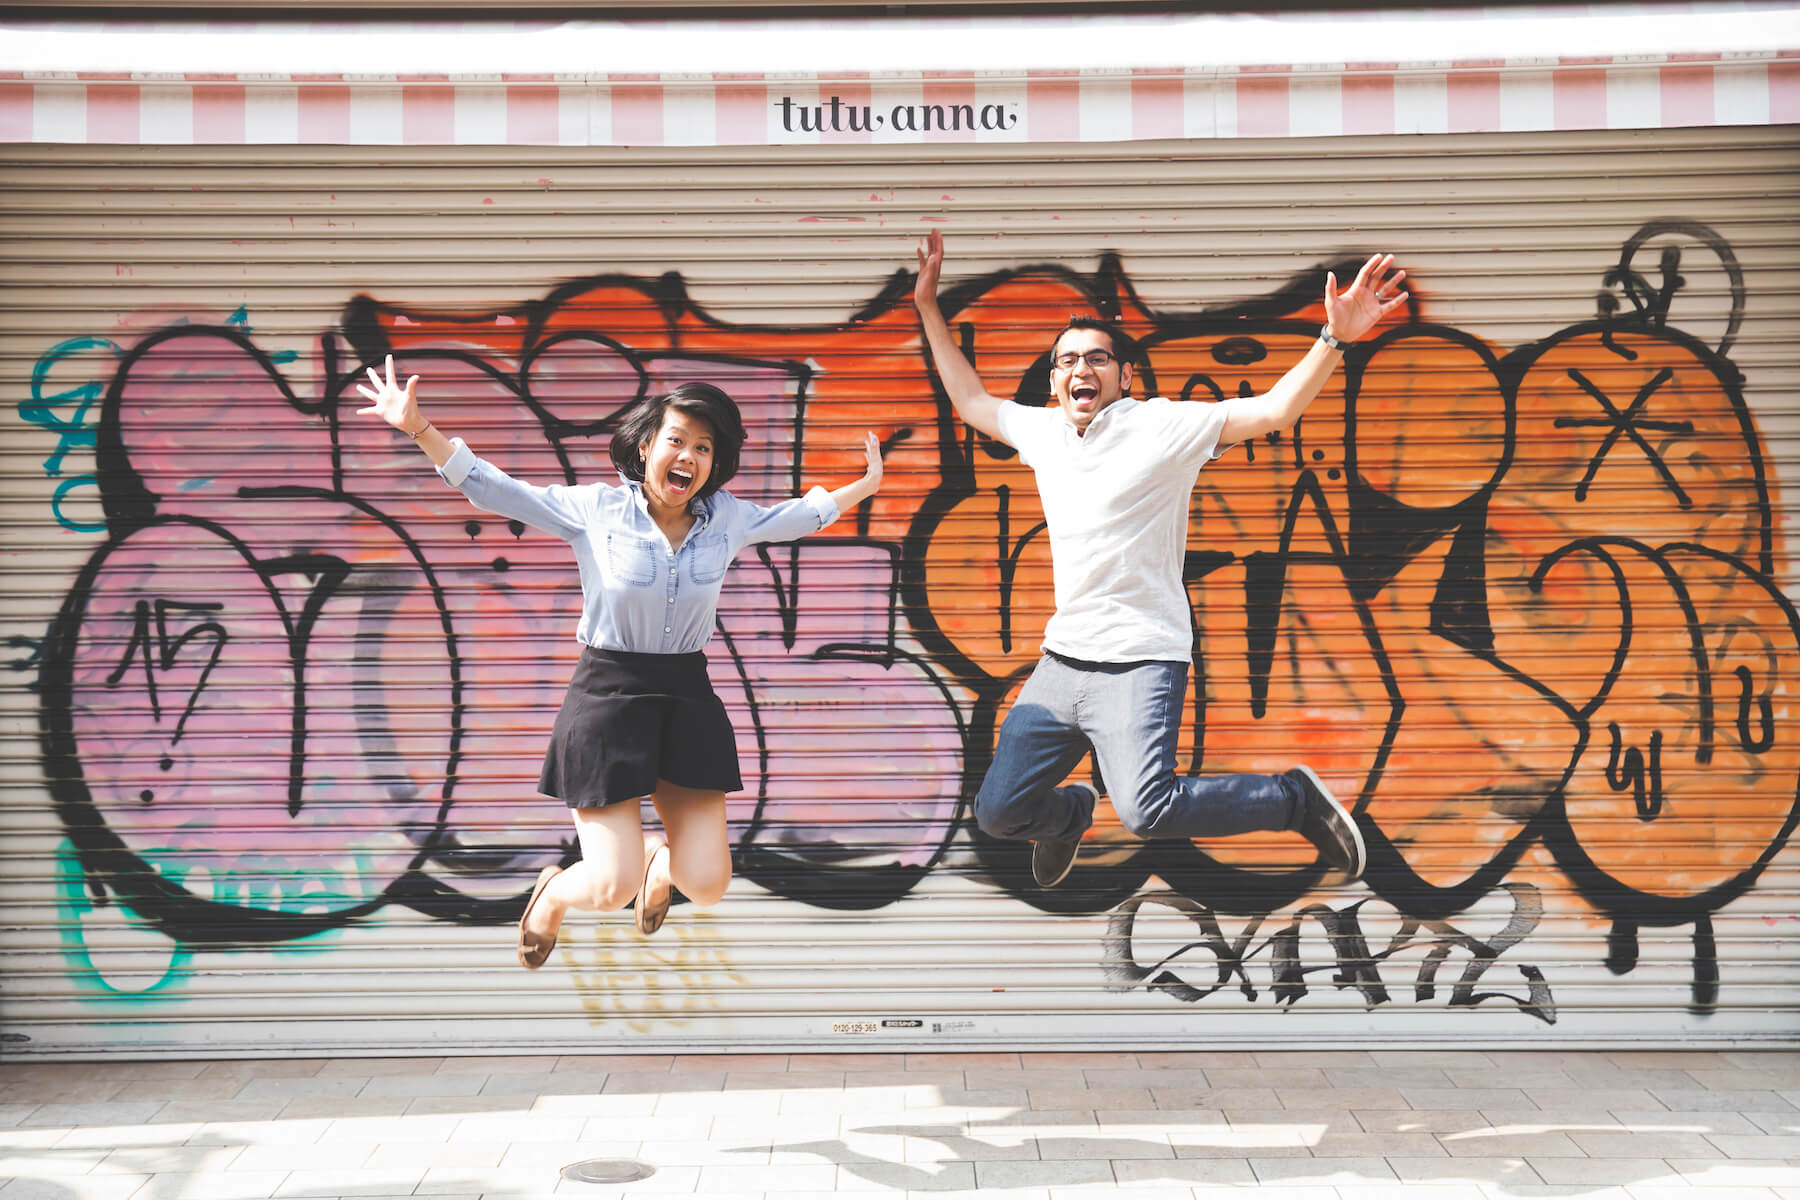 Couple jumping up in the air smiling in front of a graffiti wall in Tokyo, Japan